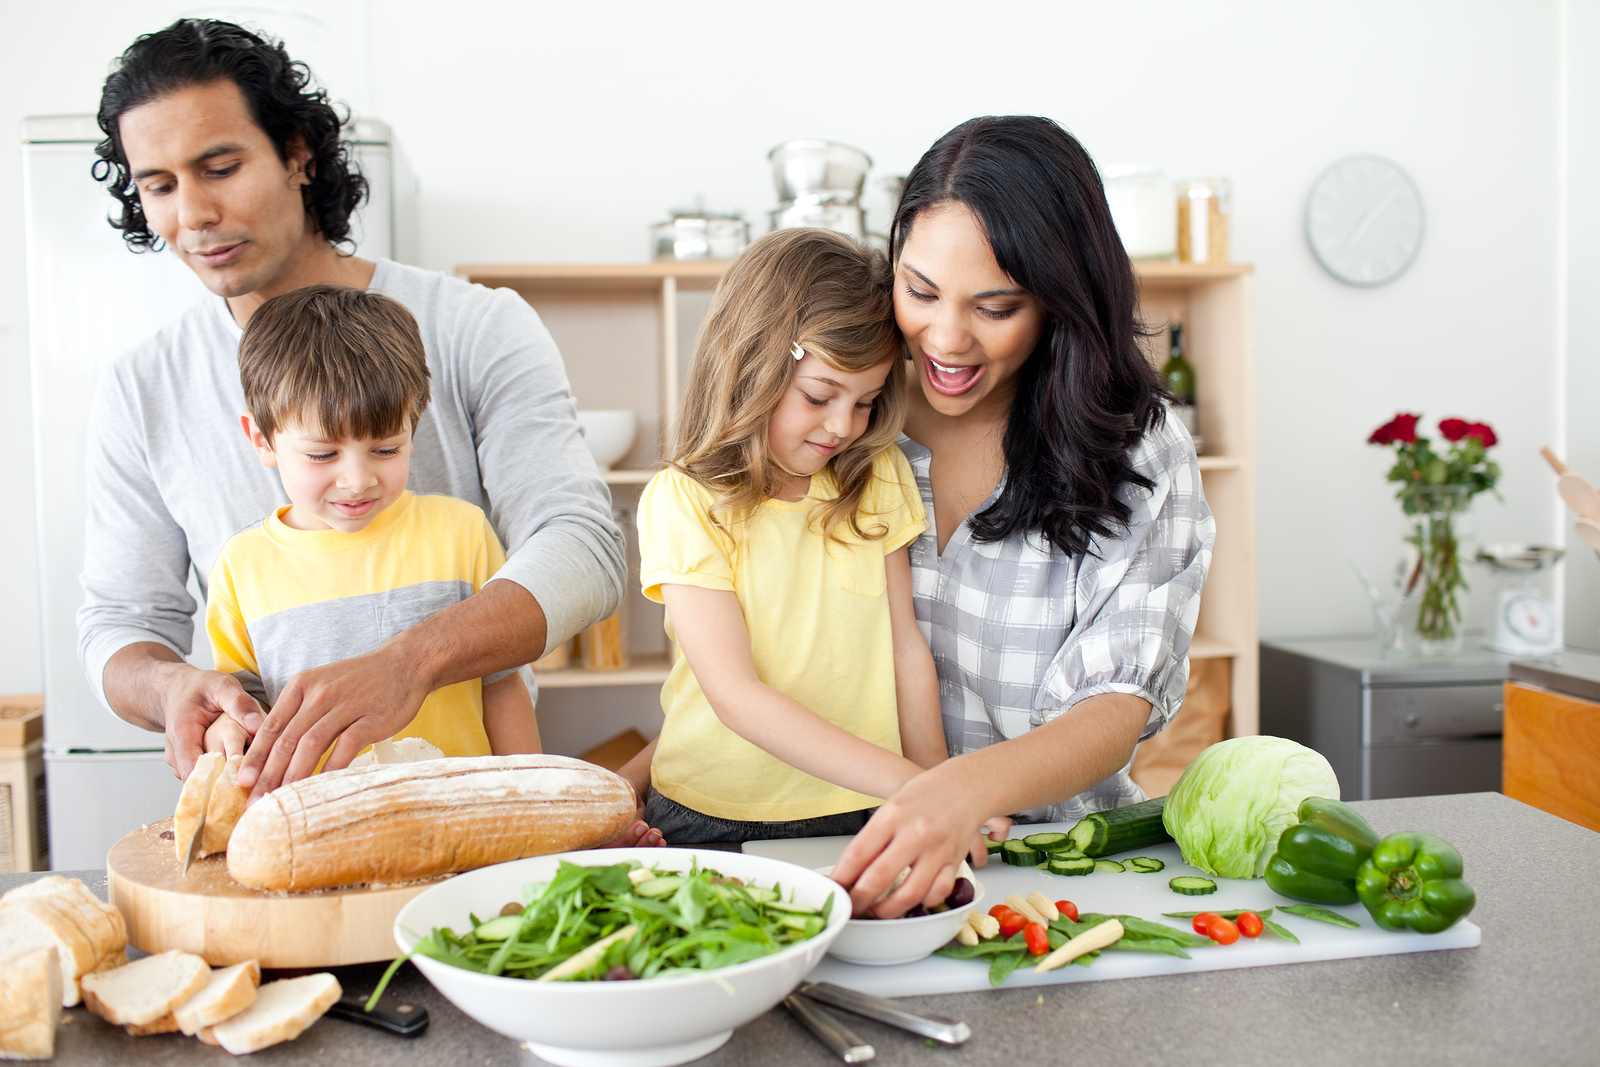 As Millennials begin having children, the organic marketing sector is going to continue to rise.